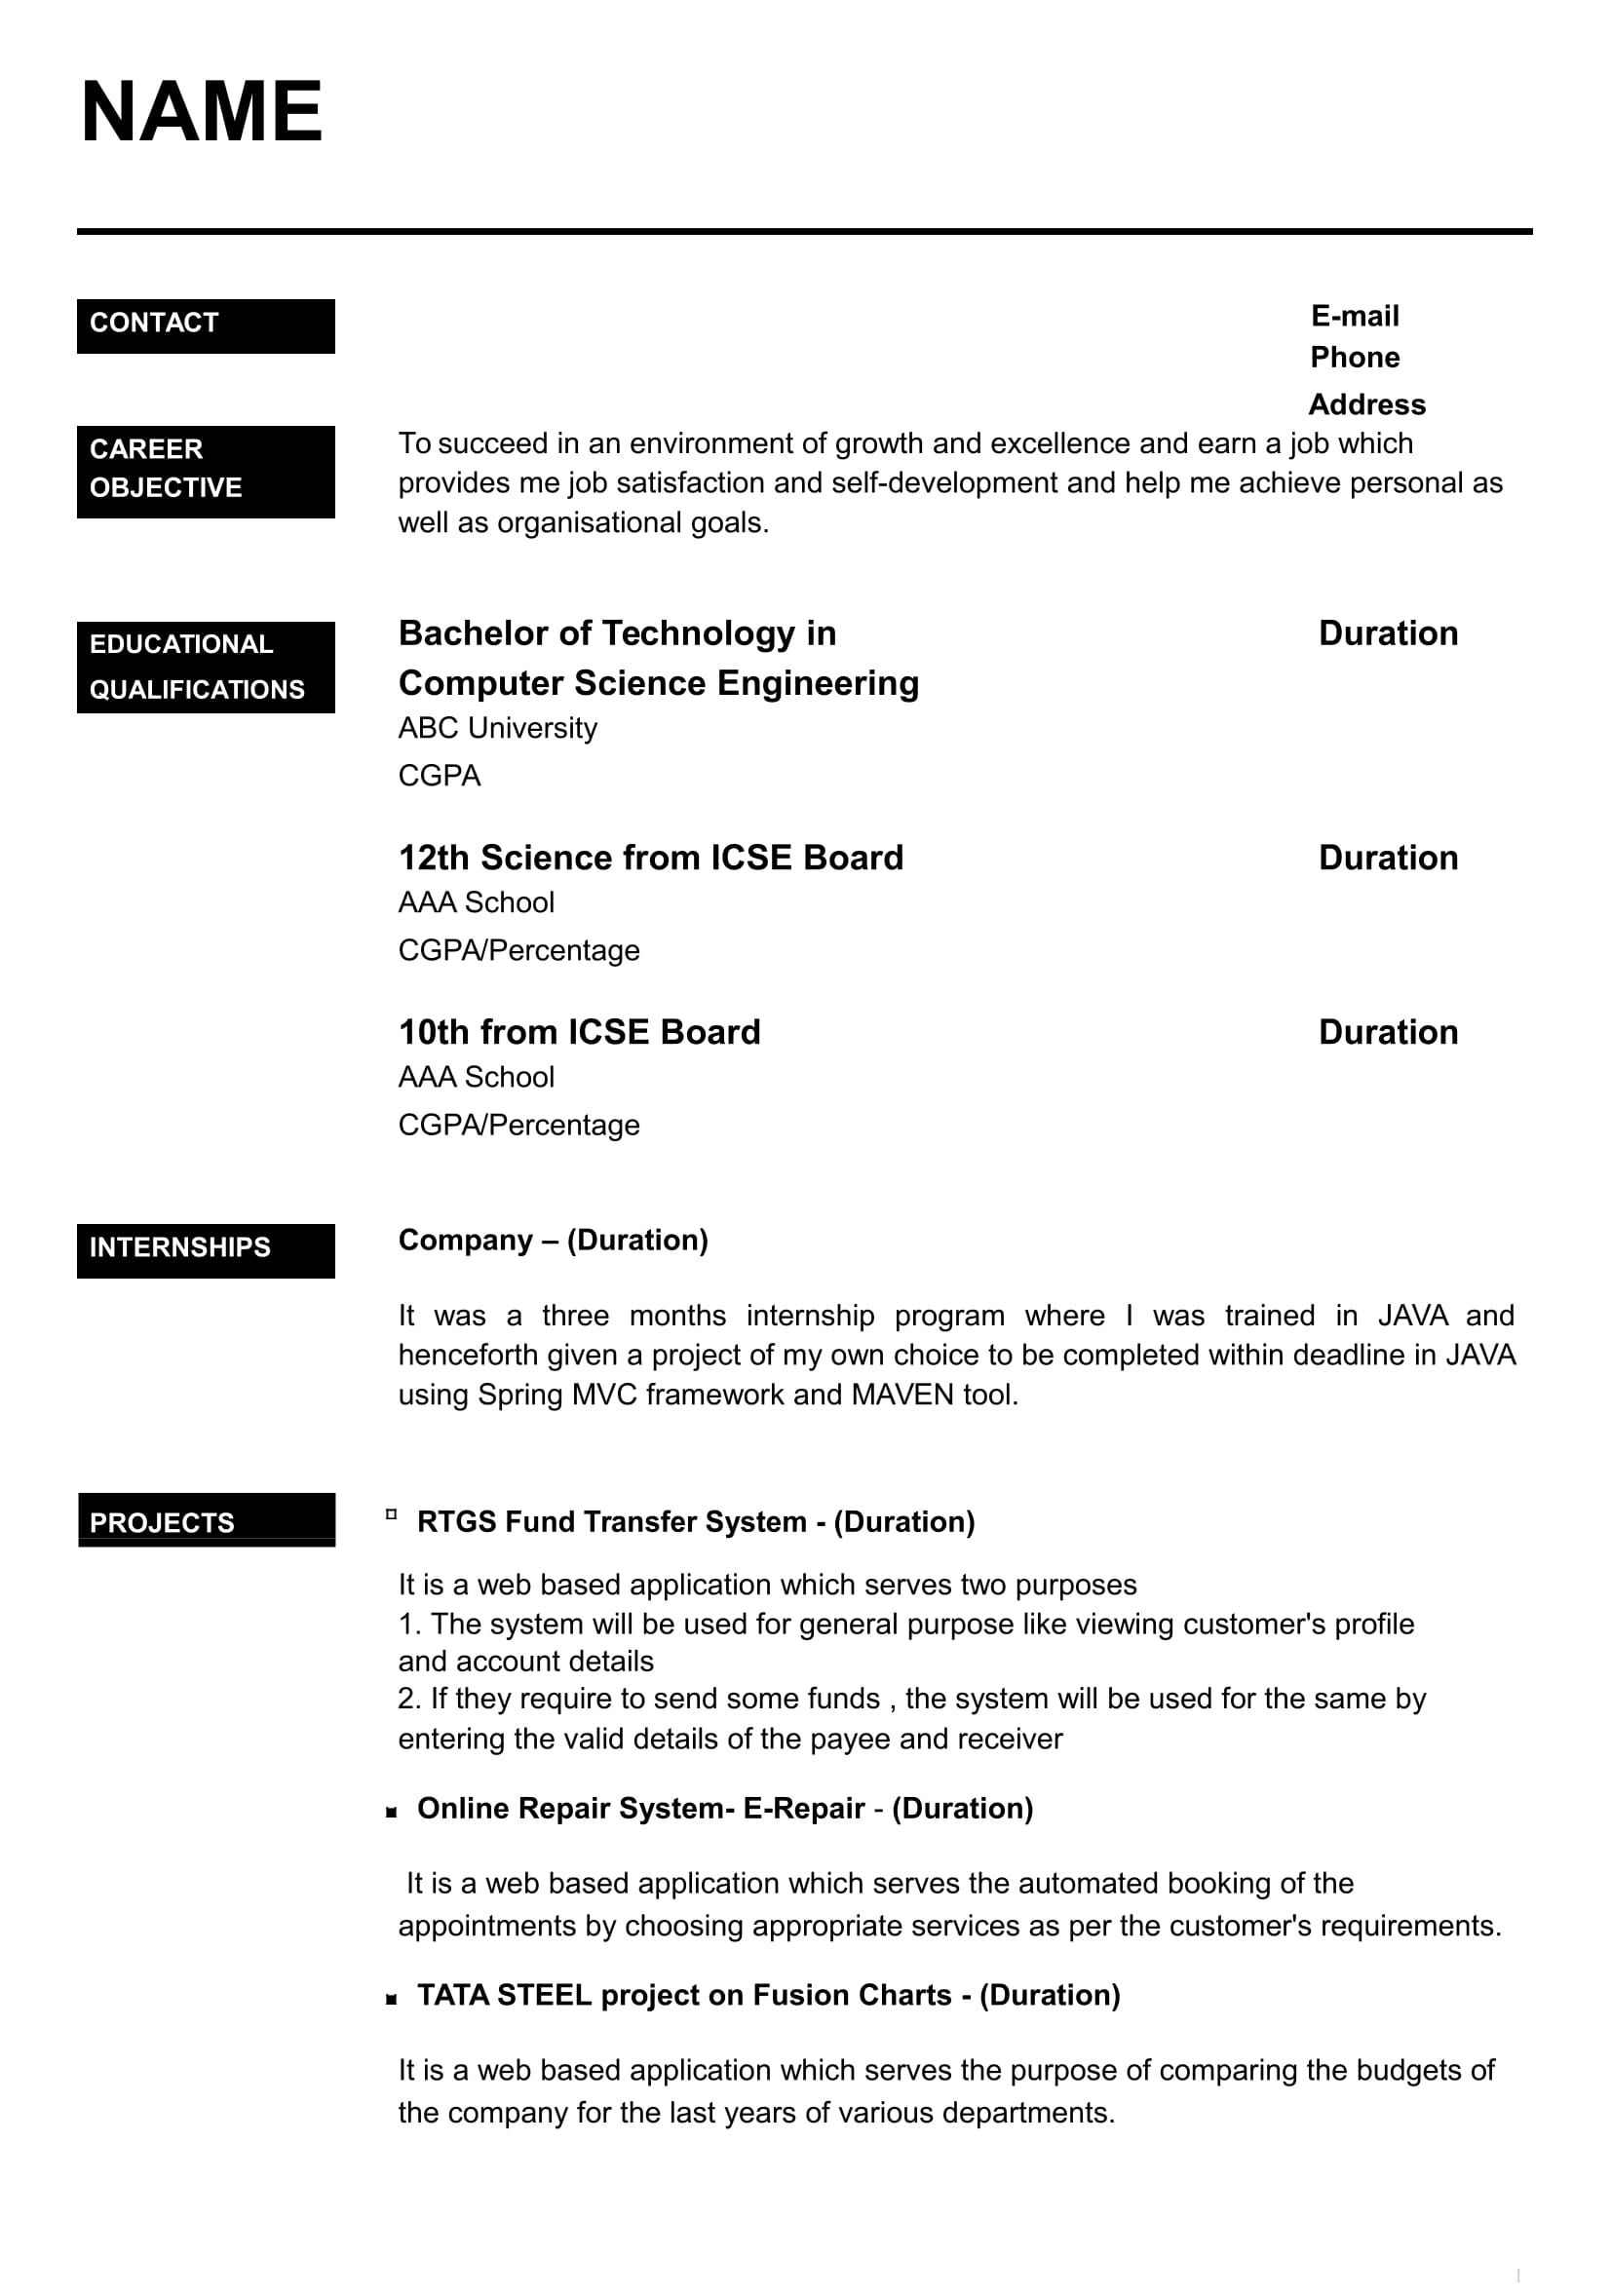 32 Resume Templates For Freshers Download Free Word Format Awesome 32 Resume Templates F Job Resume Template Simple Resume Format Resume Format For Freshers